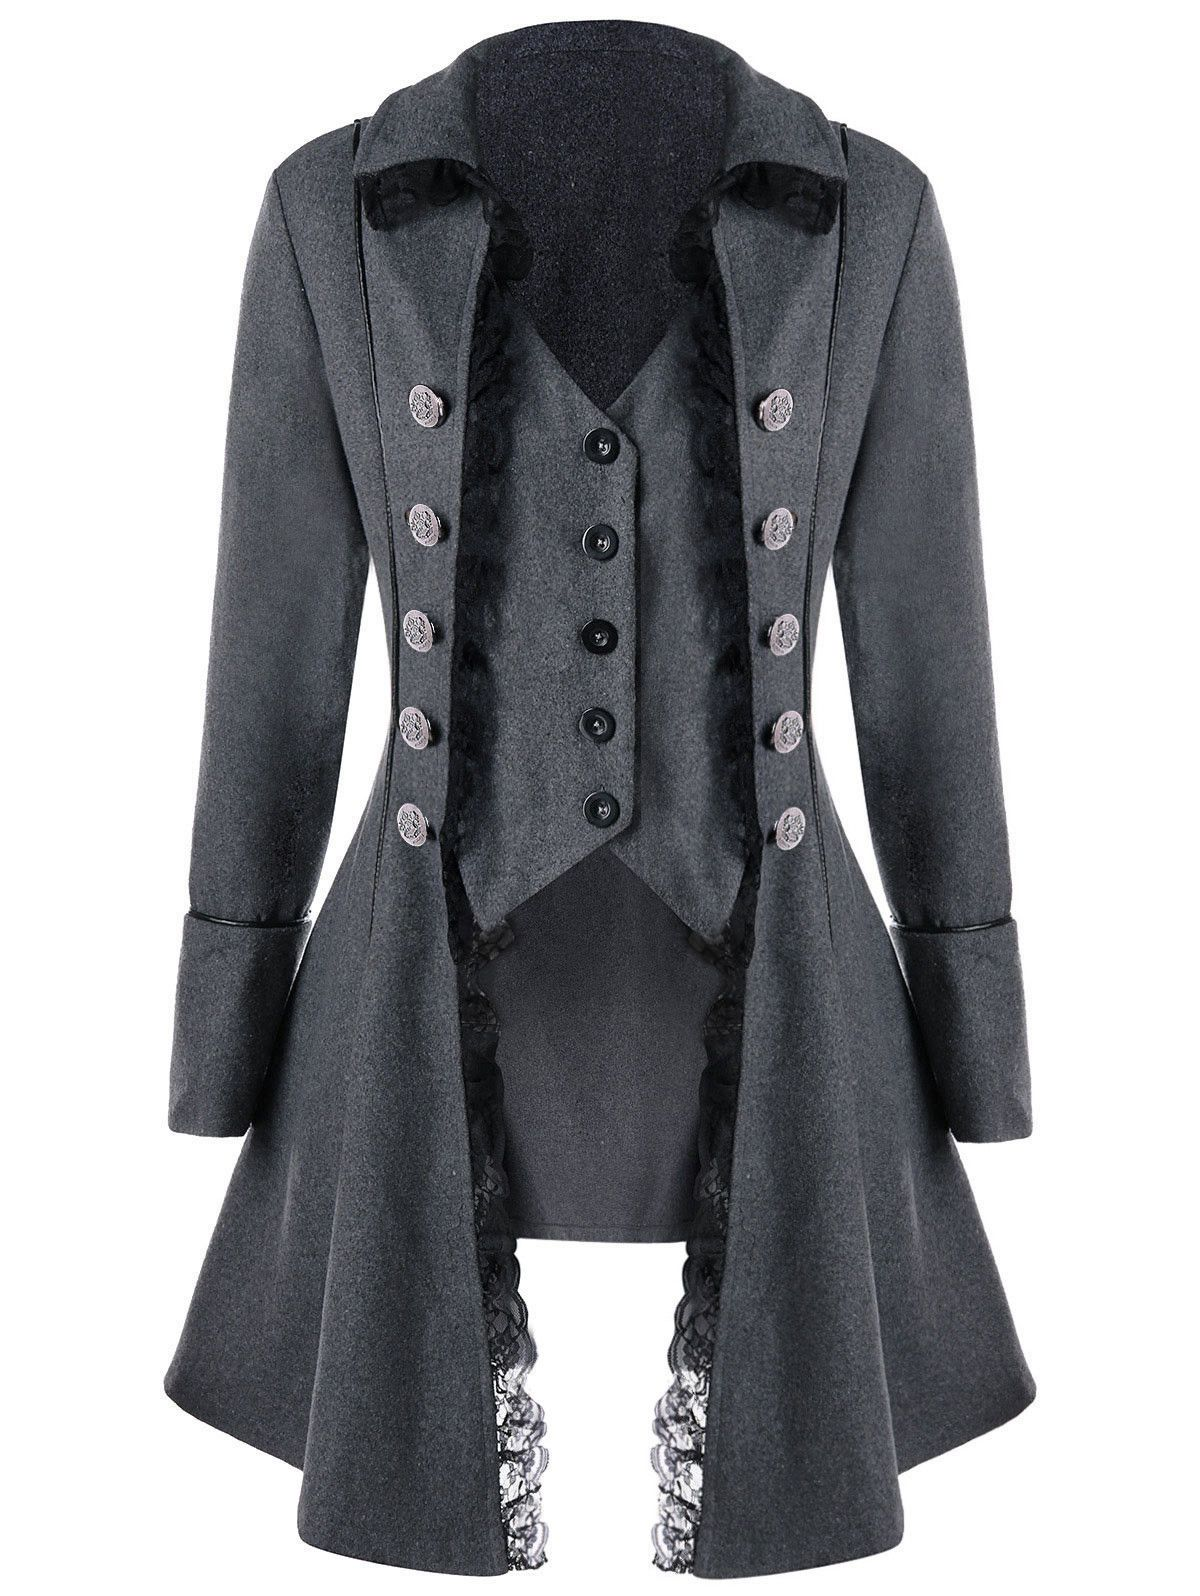 3cca6ab6a Details about Womens Victorian Steampunk Gothic Coat Retro Tailcoat ...